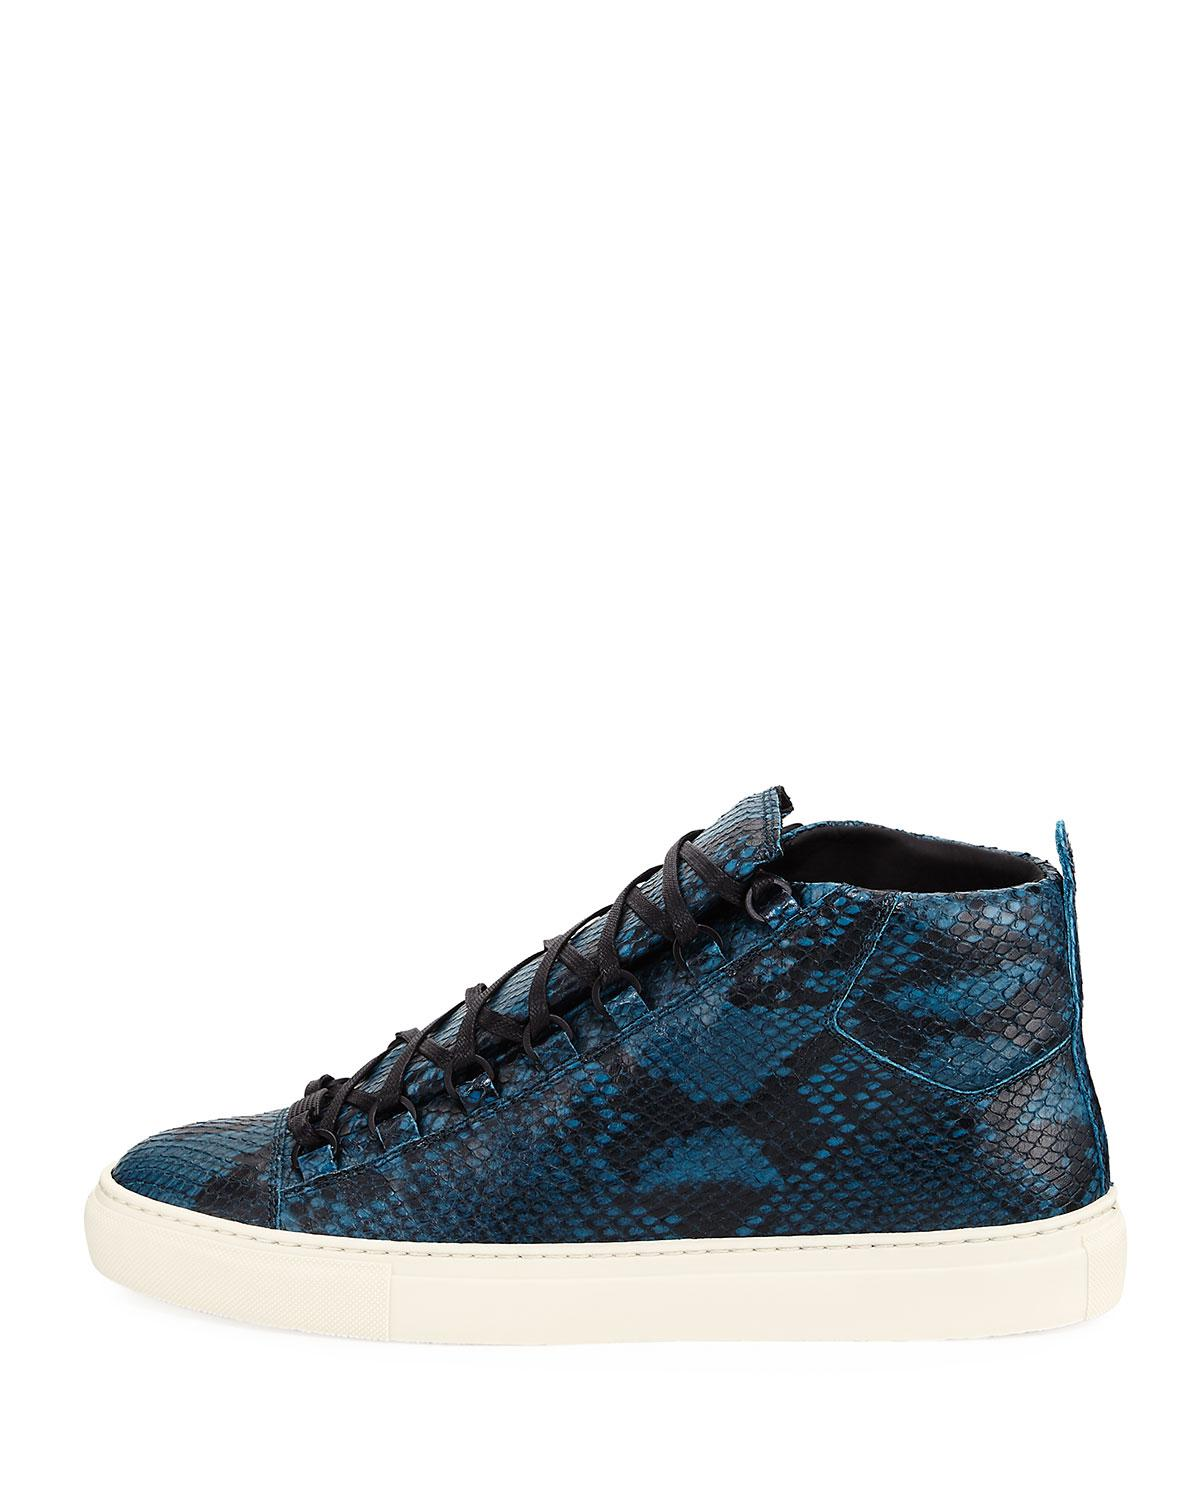 684b1052b525 Lyst - Balenciaga Men s Arena Python-embossed Leather High-top ...